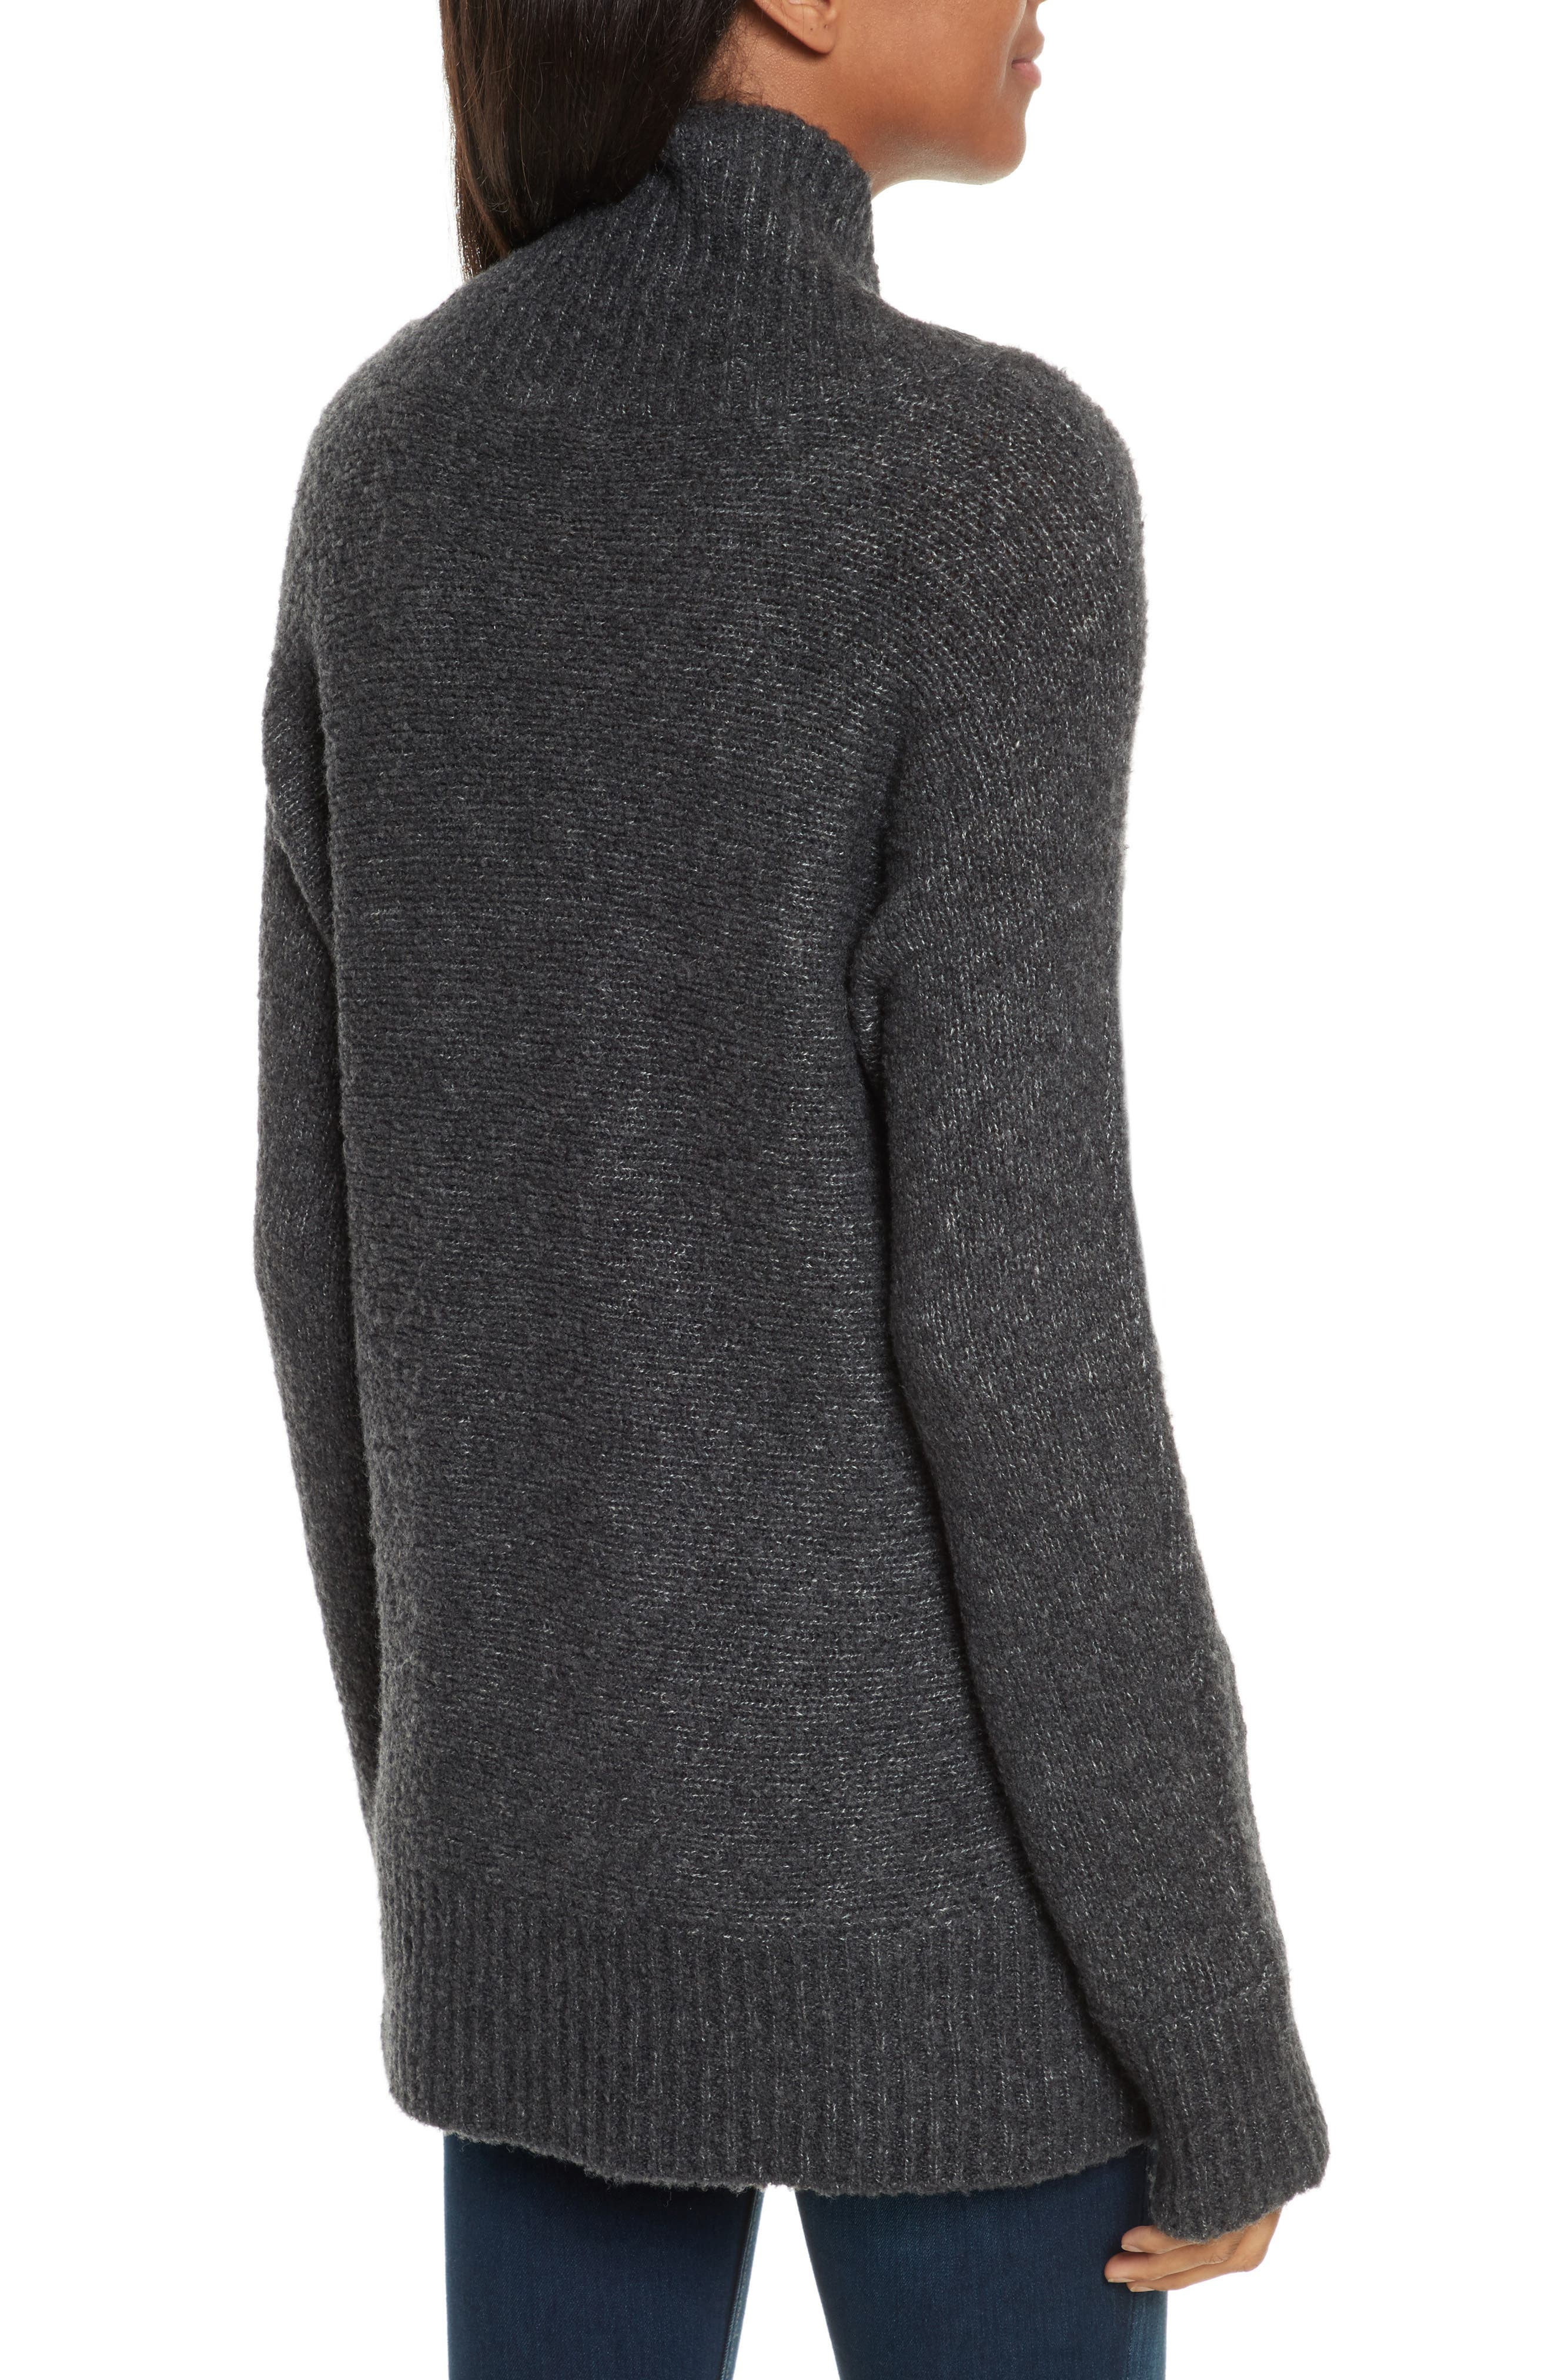 Lehi Wool & Cashmere Sweater,                             Alternate thumbnail 3, color,